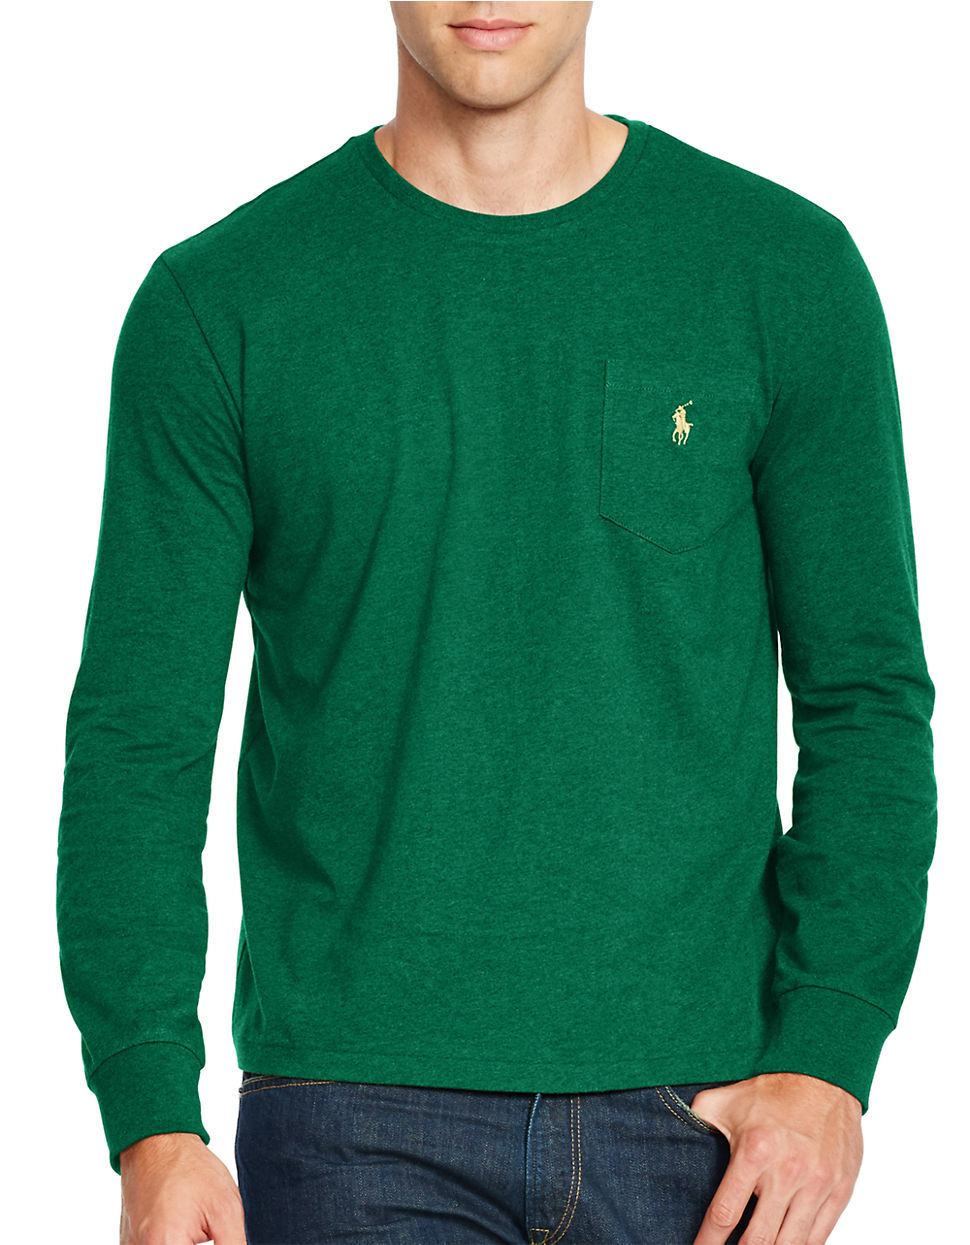 Polo ralph lauren long sleeve crewneck shirt in green for for Forest green polo shirts